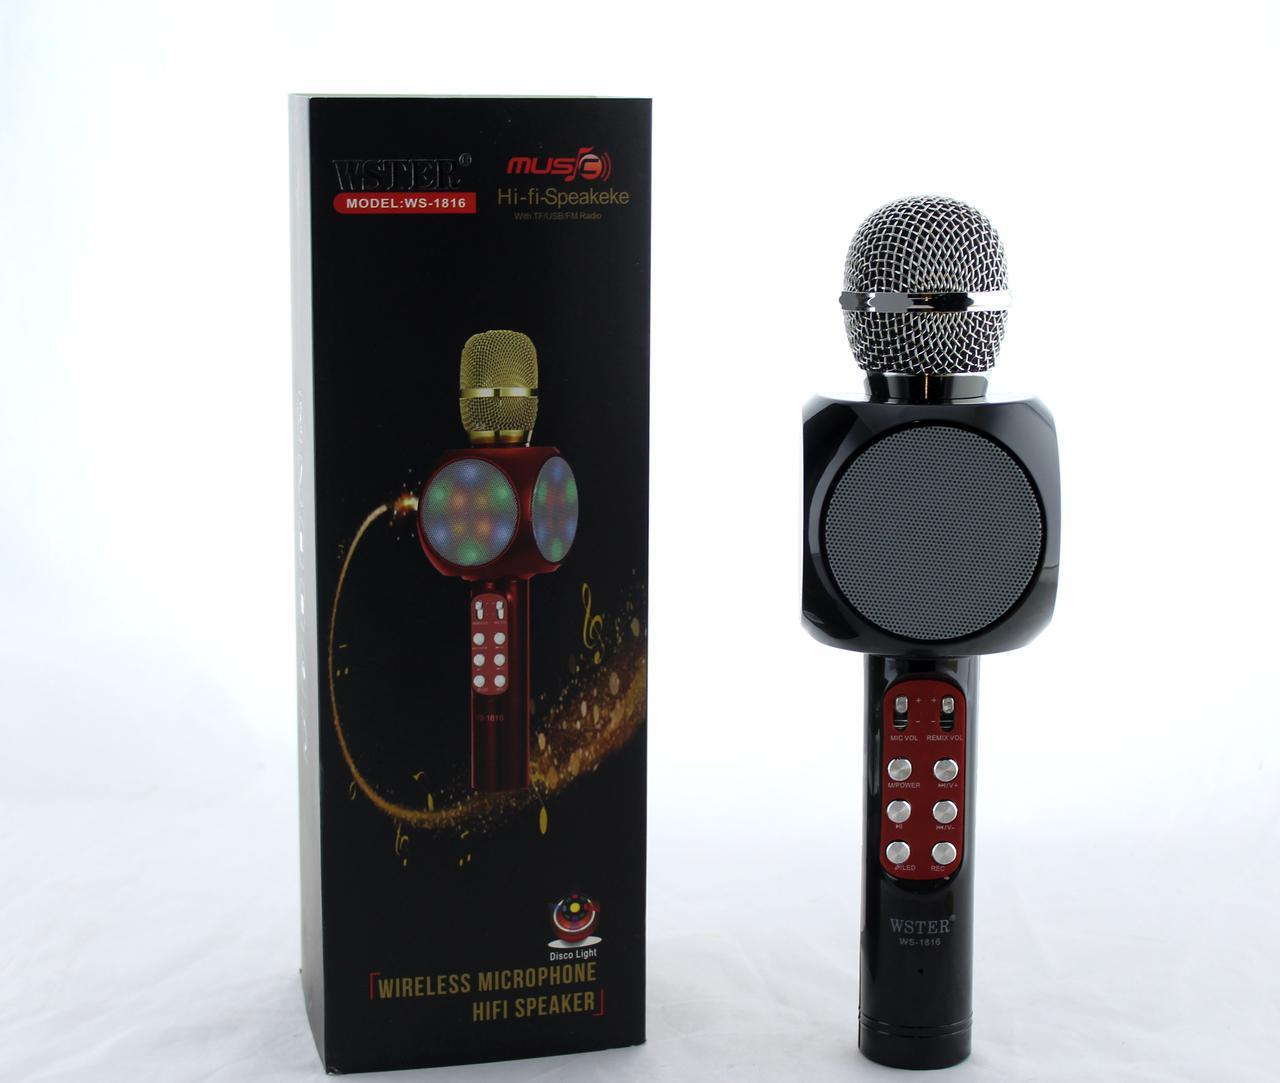 Микрофон  DM Karaoke 1816, Bluetooth микрофон, 2 в 1 - динамик и микрофон, Беспроводной микрофон